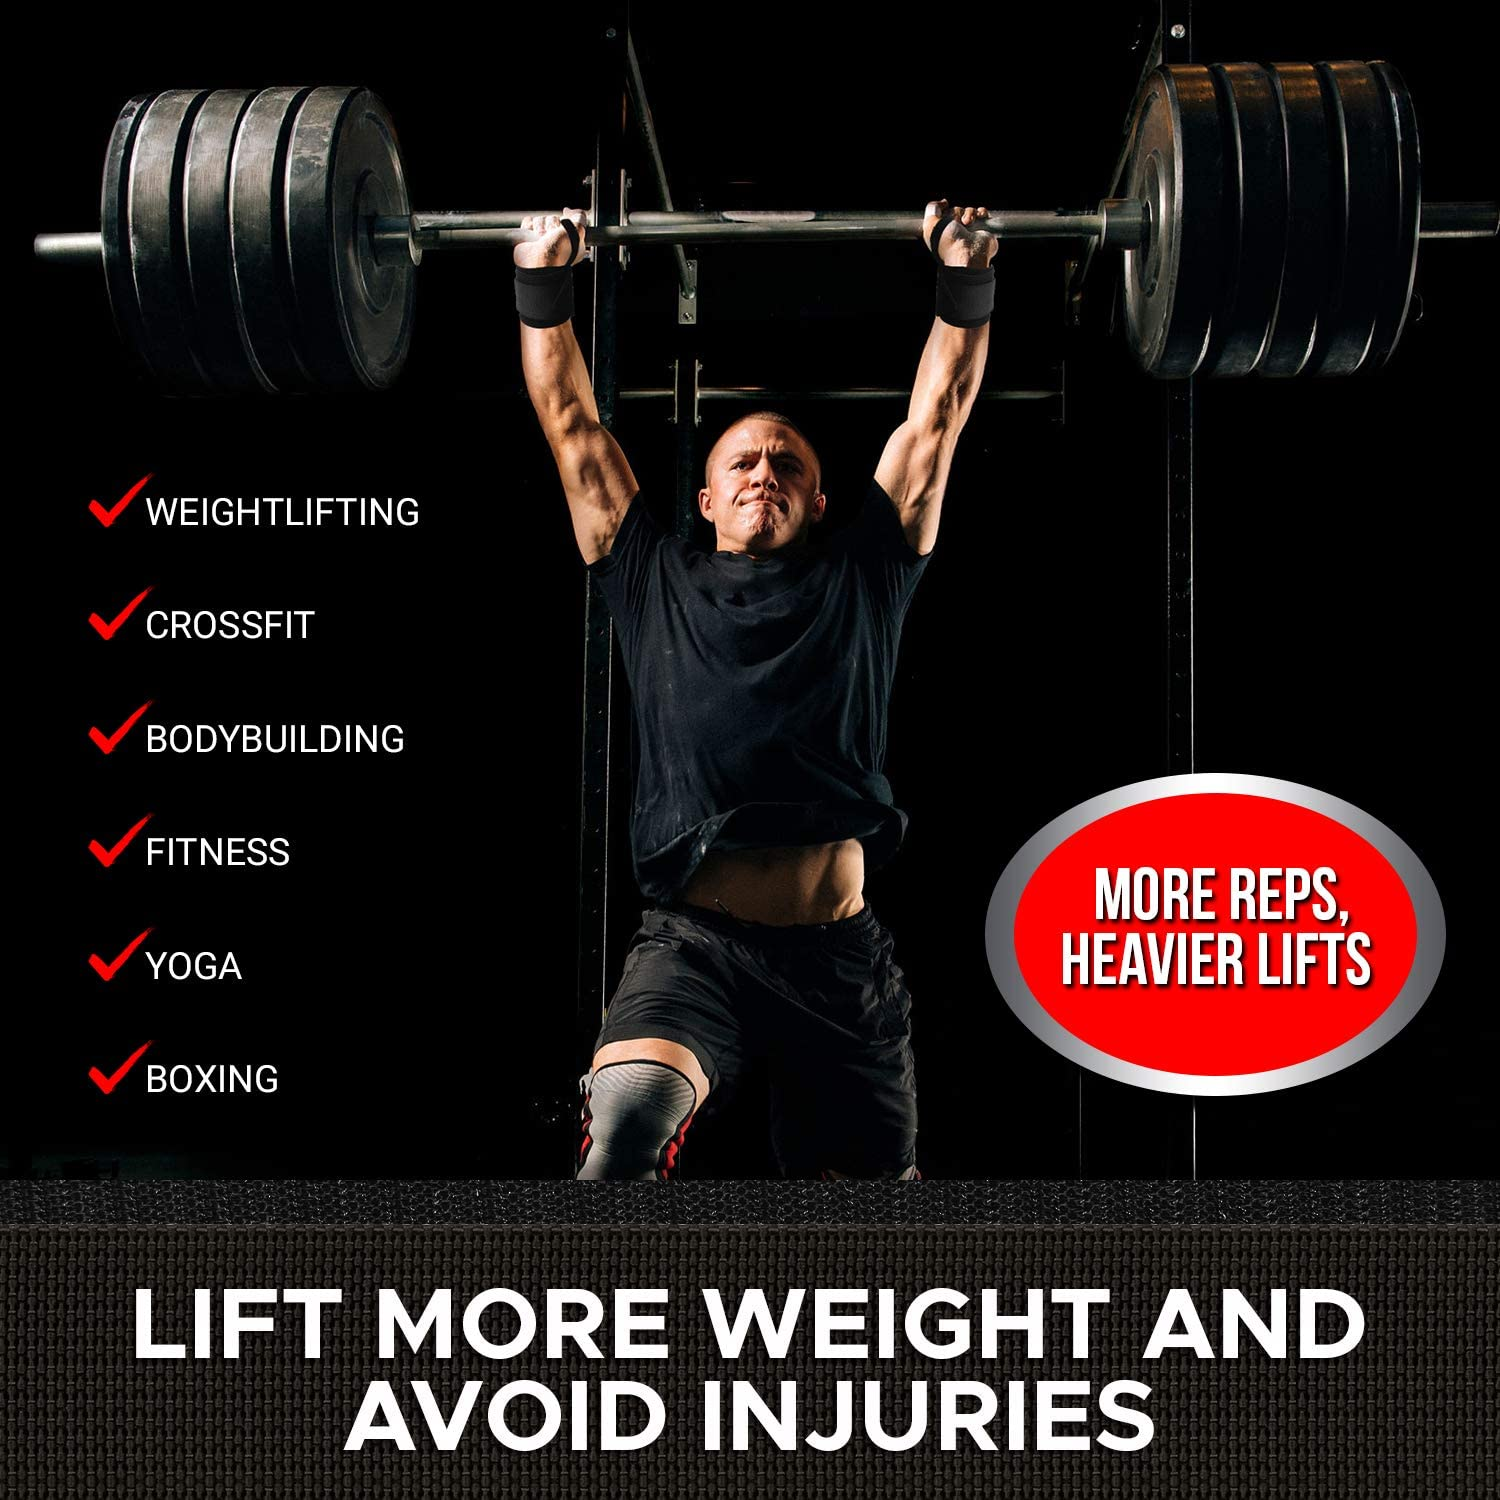 Exercises /& Fitness Workout Powerlifting Gym Deadlift for Men//Women Heavy-Duty Wrist Support with Thumb Loop/—12 or 18 Pair WBCM/—Premium Weight Lifting Wrist Wraps for Crossfit Weightlifting